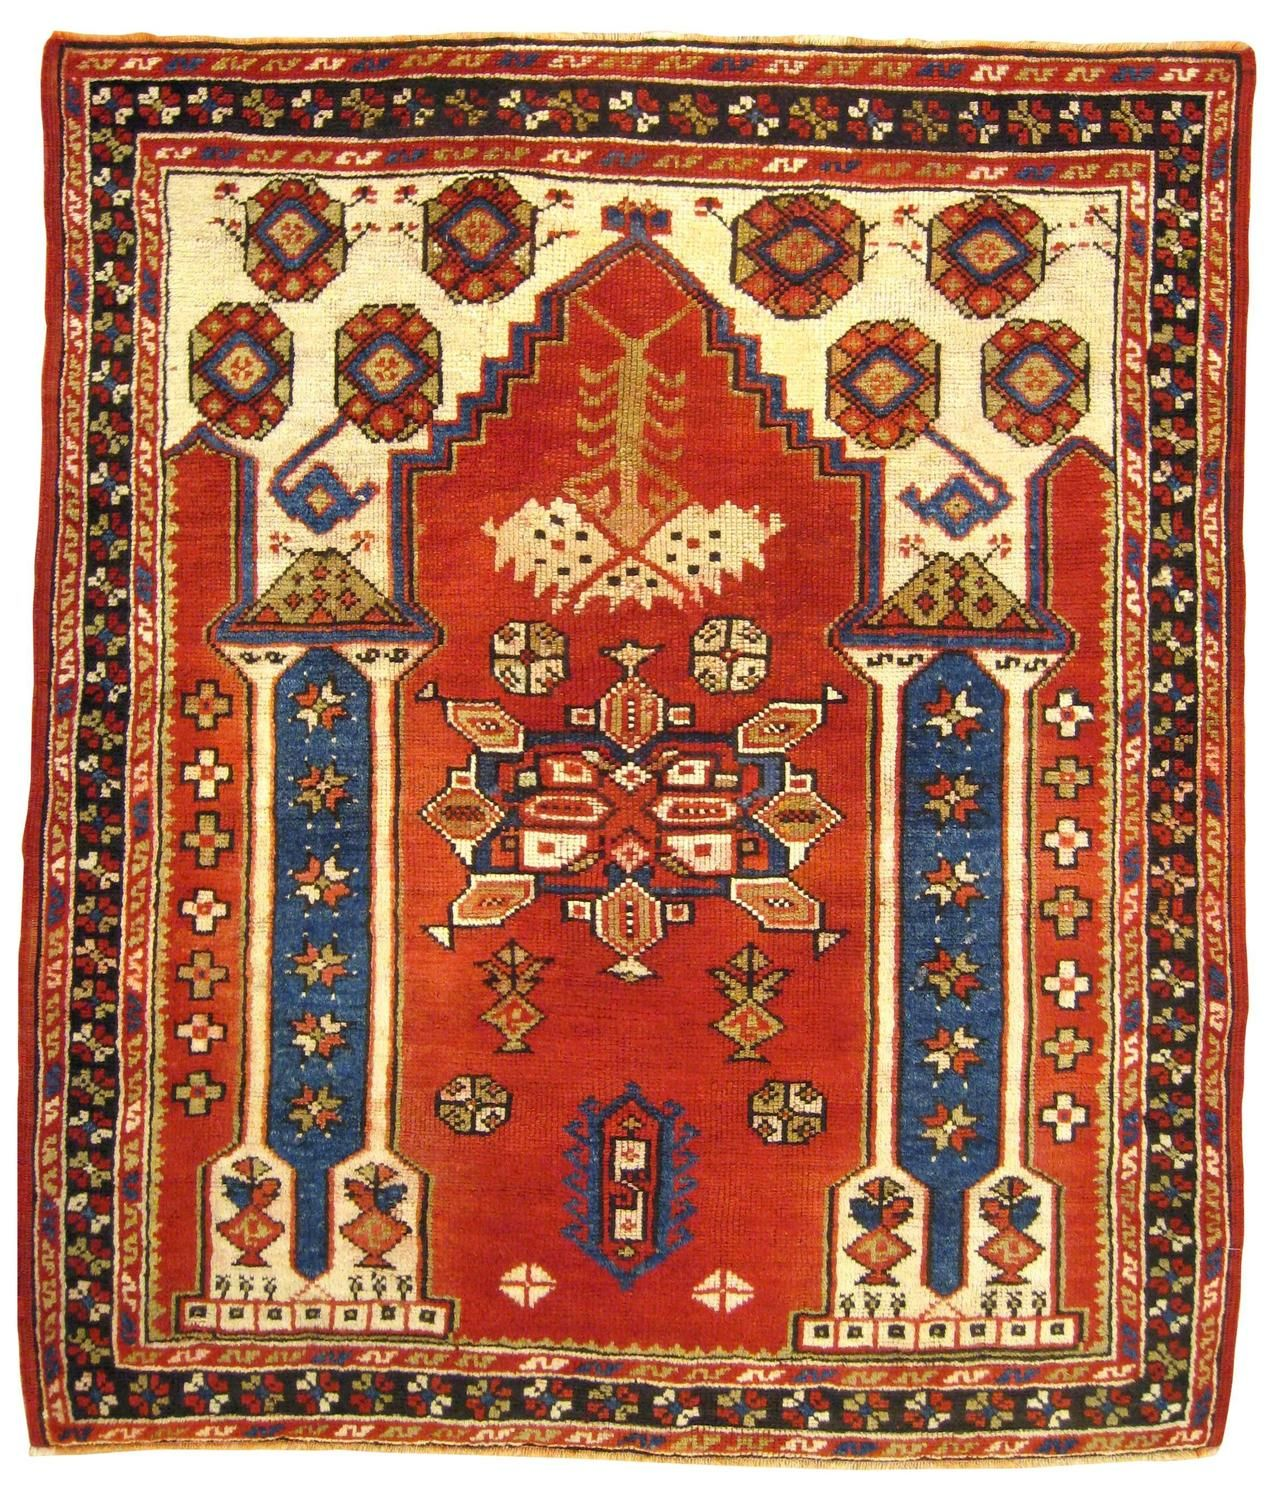 Antique Turkish Bergamo Oriental Rug Small Square Size With Pillars And Arch Rugs Oriental Rug Rugs On Carpet